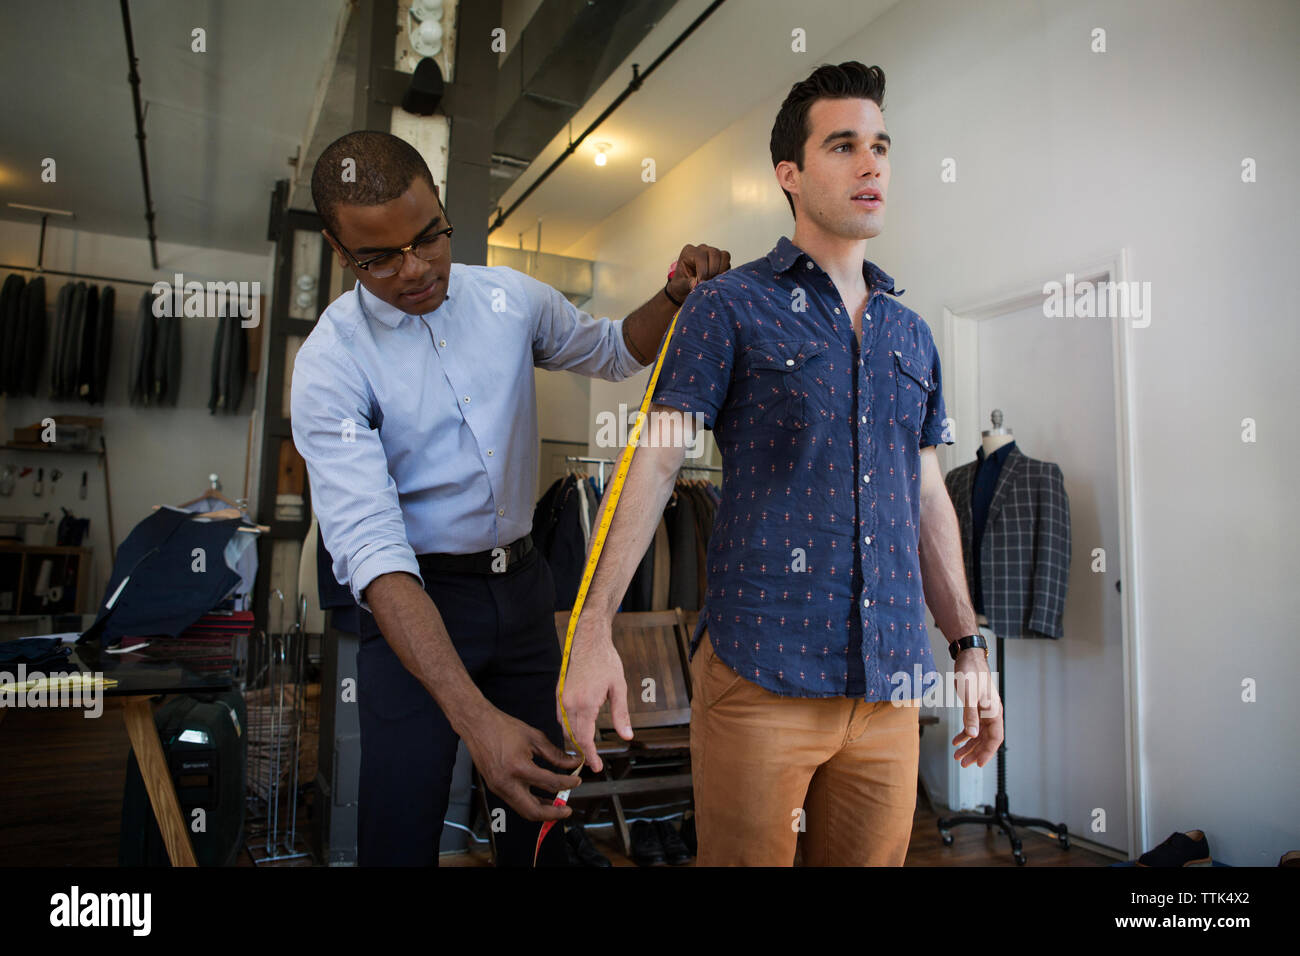 Tailor taking measures of customer at workshop - Stock Image